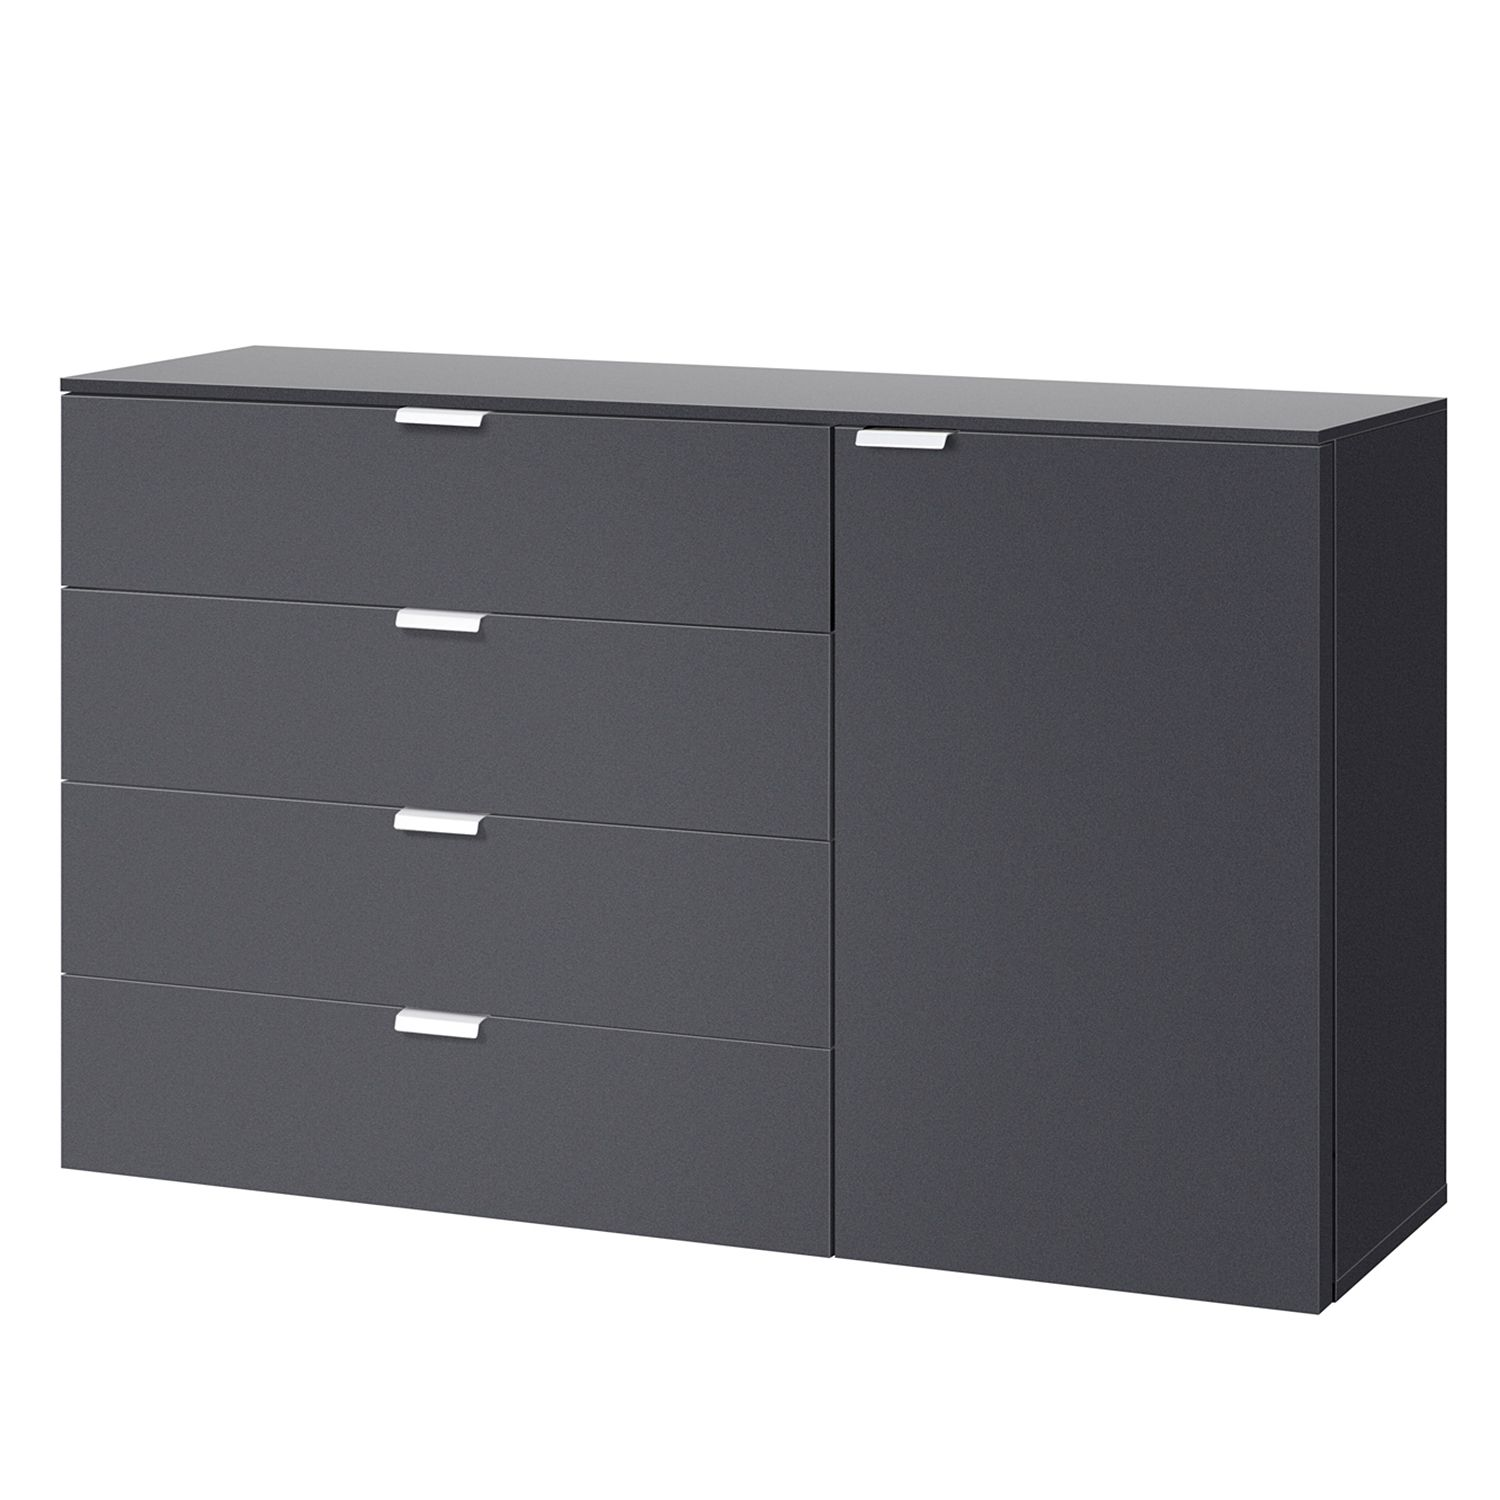 Home24 Dressoir Carina II, Express Moebel